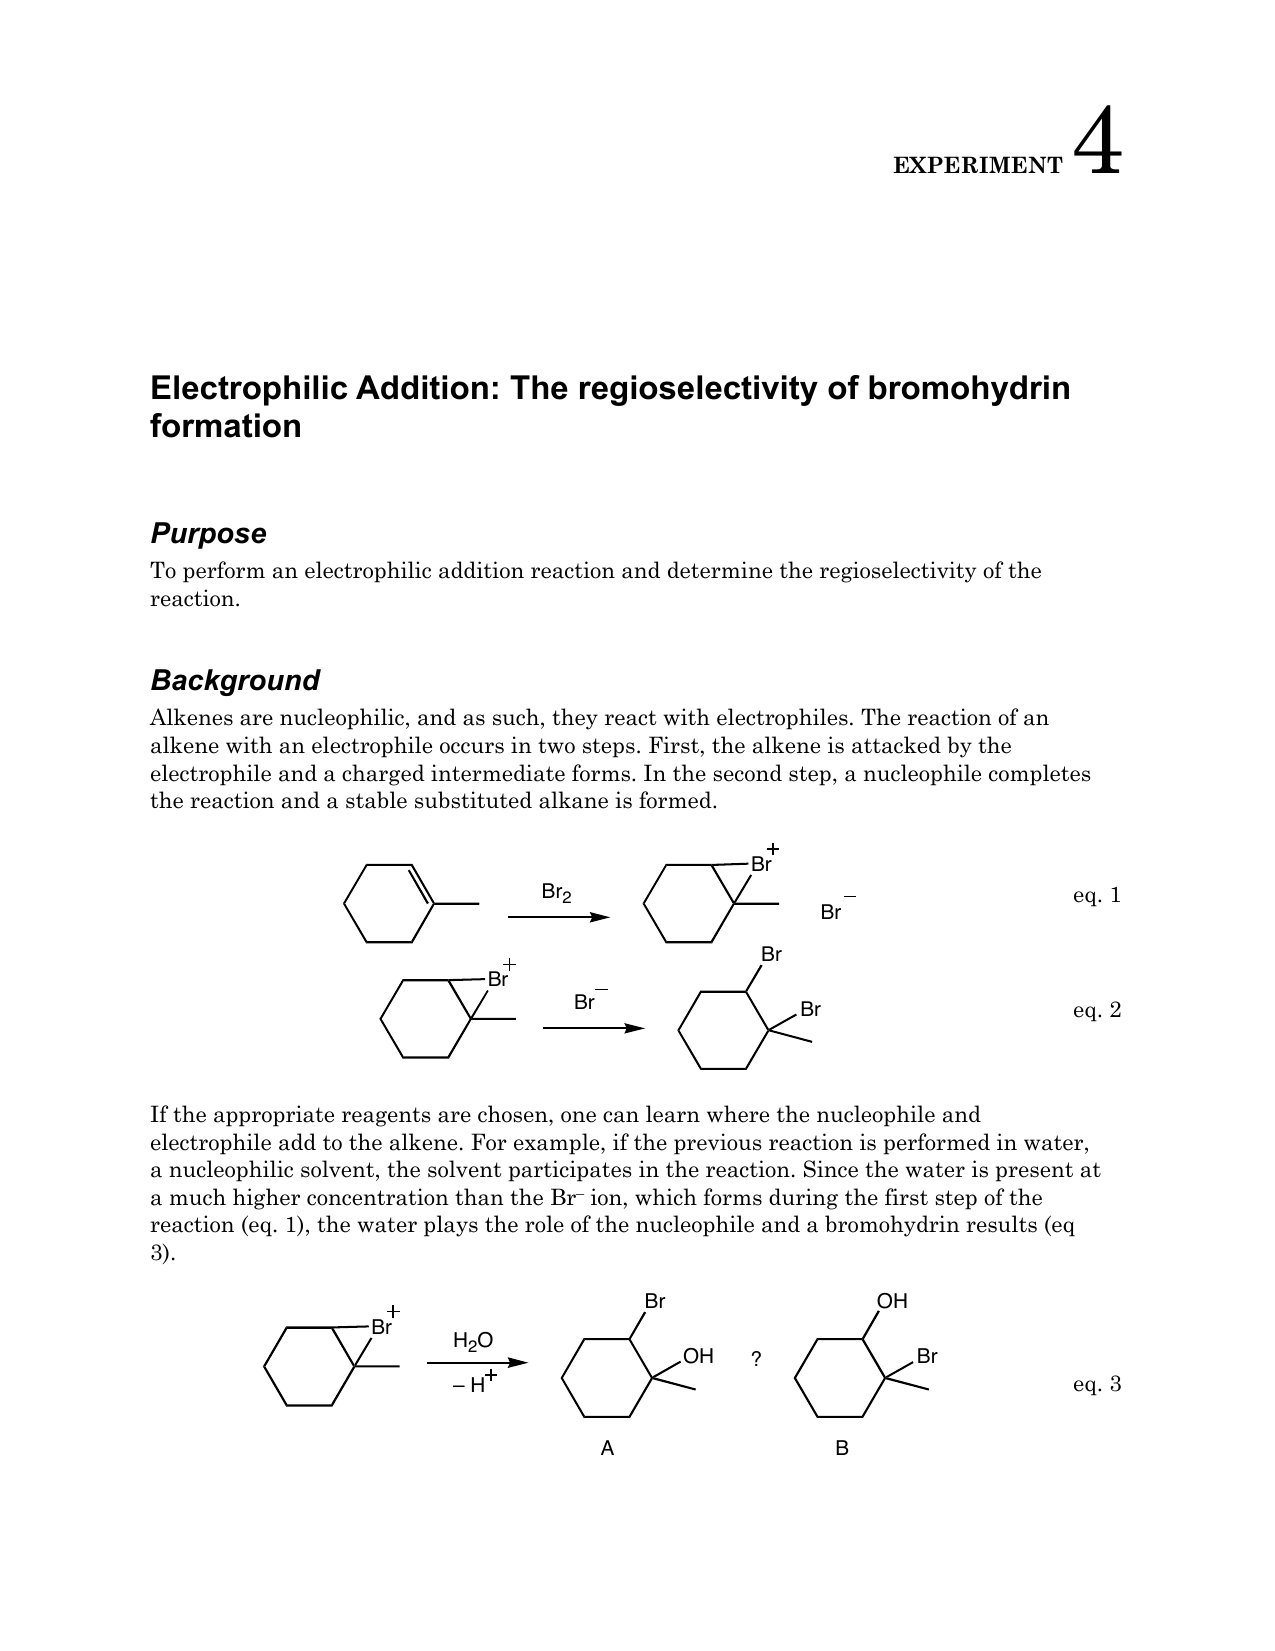 Exp 4 Electrophilic Addition The Regioselectivity Of